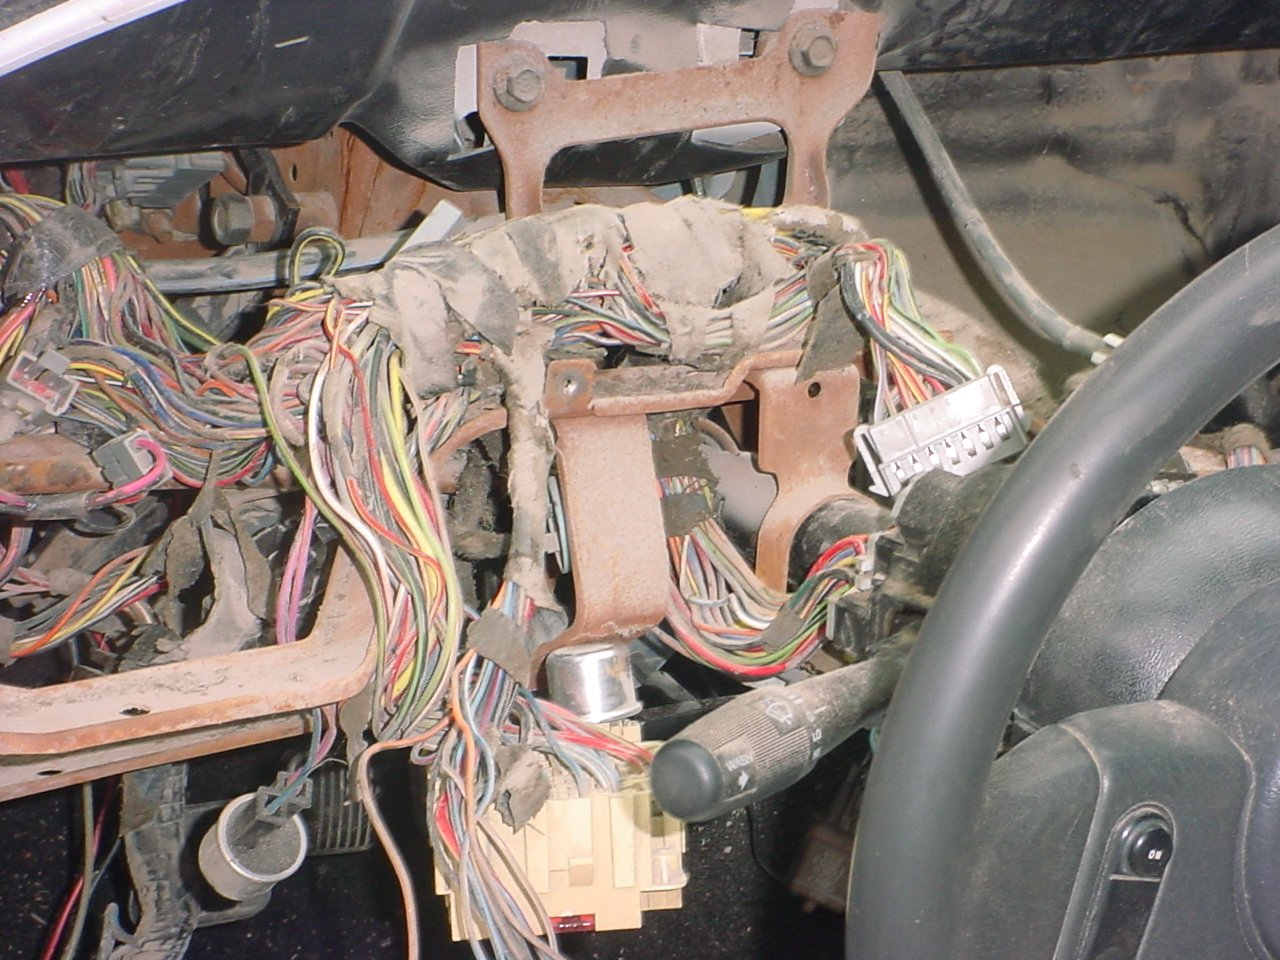 12808d1134269196 underdash wiring diagram dsc01663 underdash wiring diagram ford mustang forum 2002 Mustang Radio Wiring Diagram at arjmand.co